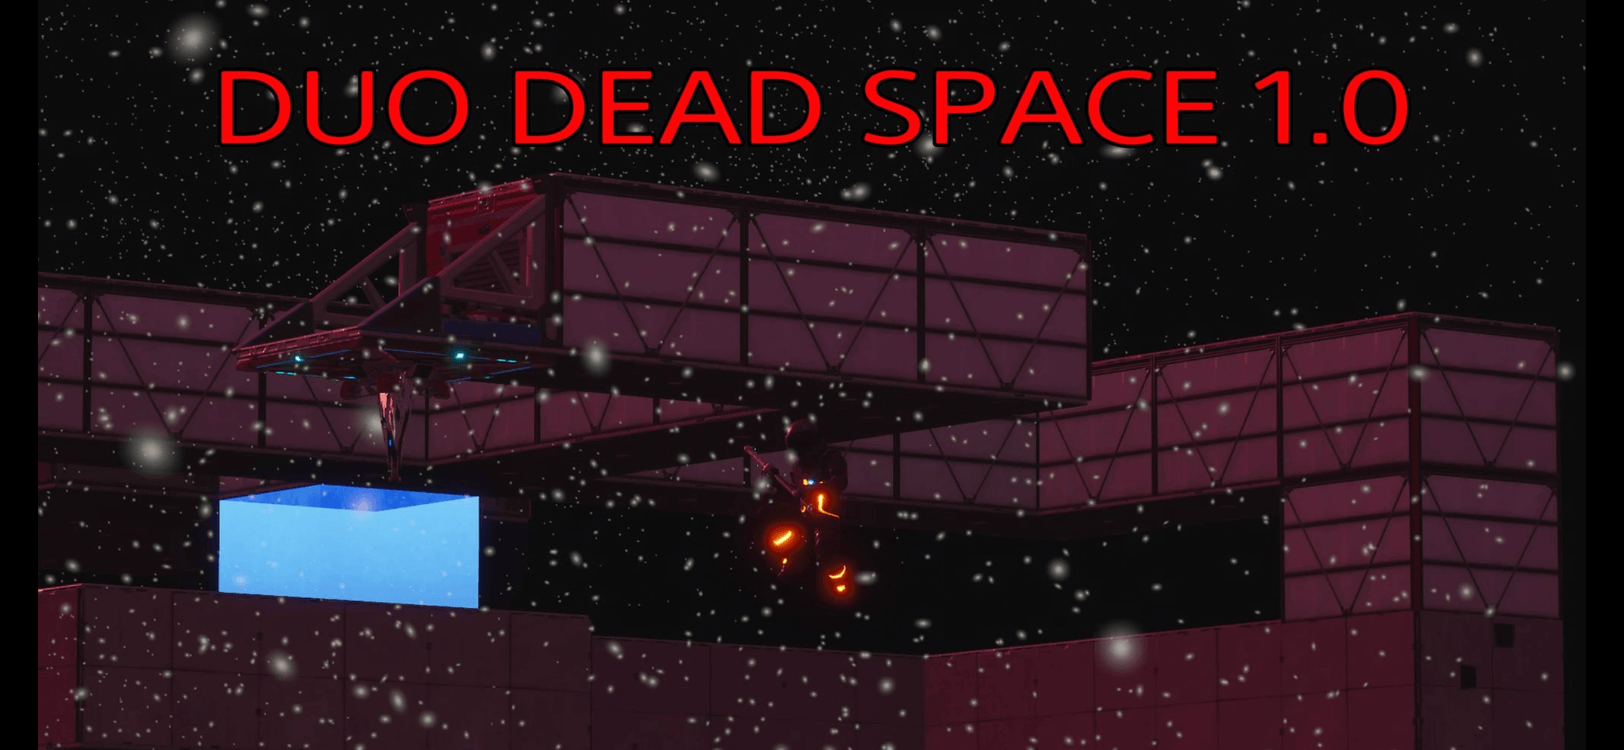 DUO DEAD SPACE 1.0